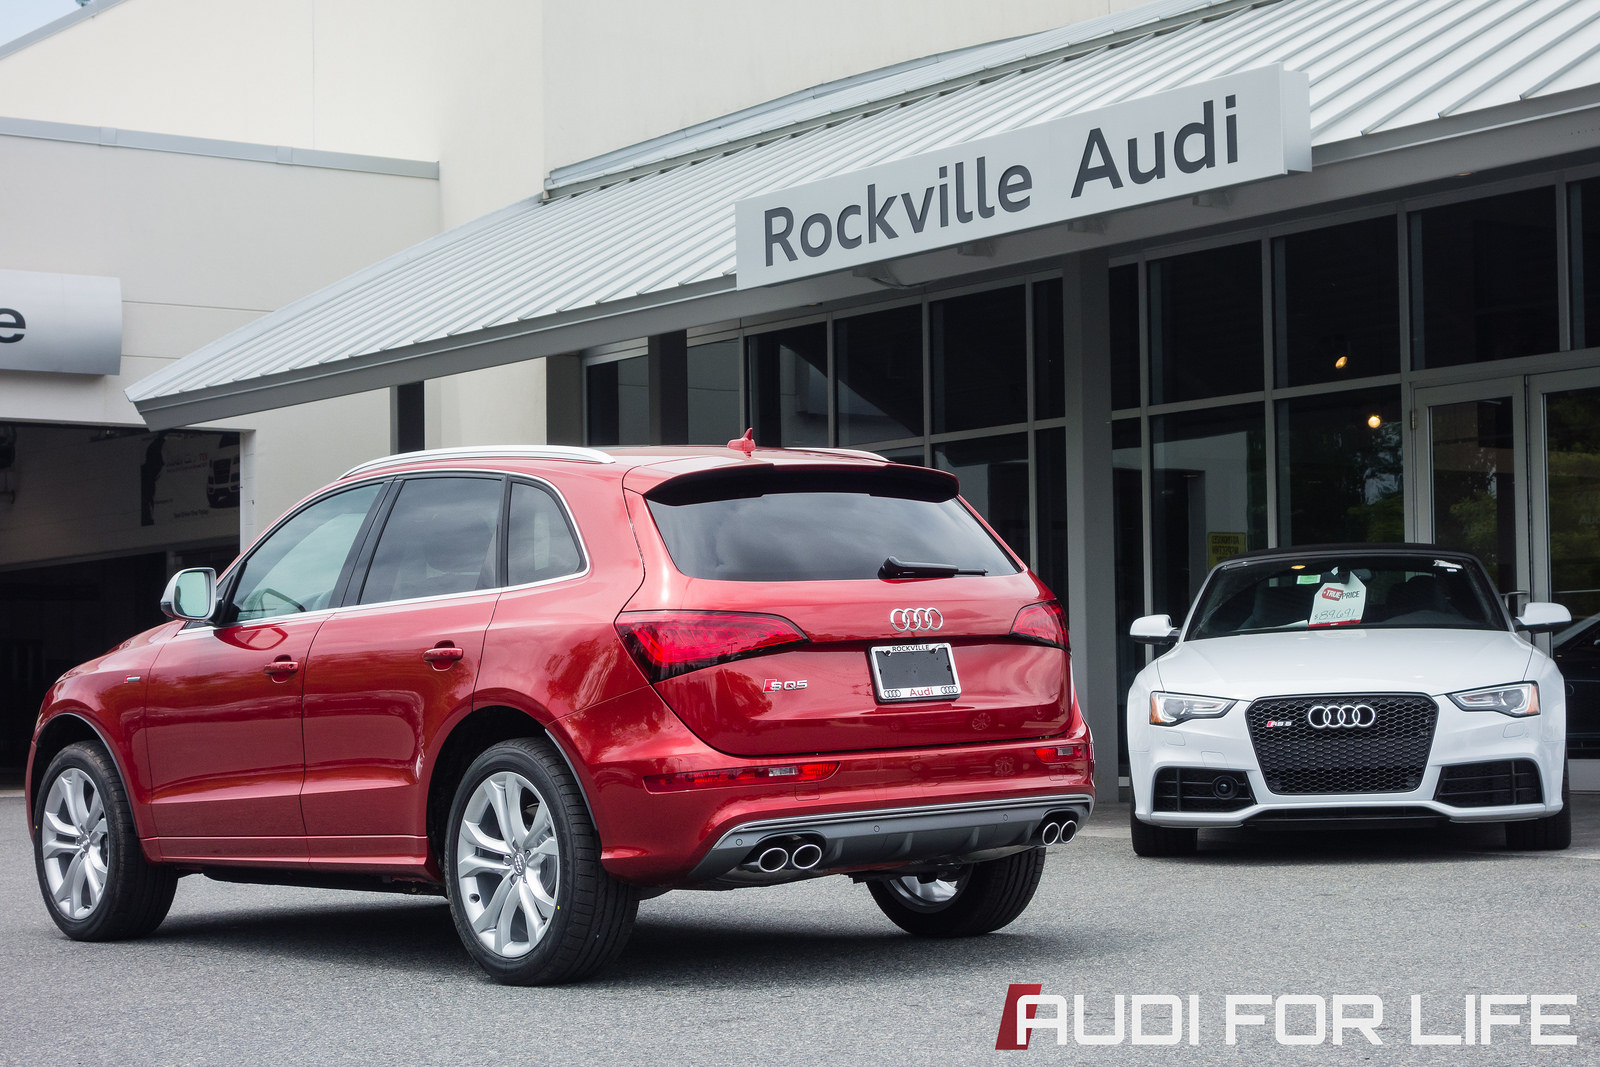 Volcano Red Audi SQ5 and Suzuka Gray RS 5 Cabriolet at Rockville Audi